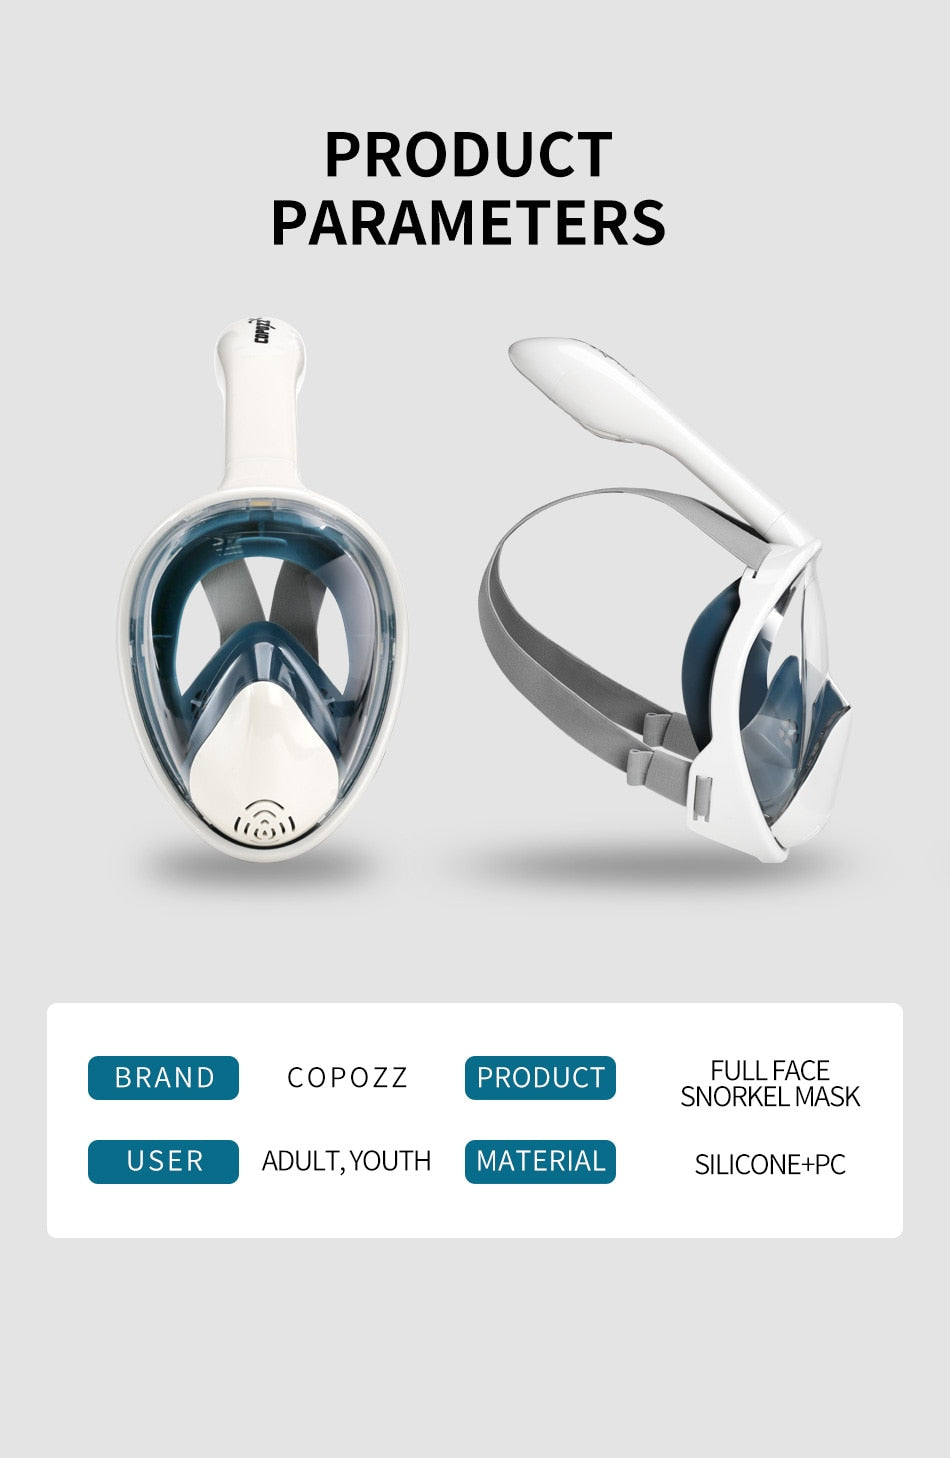 COPOZZ - Full Face Snorkeling Mask